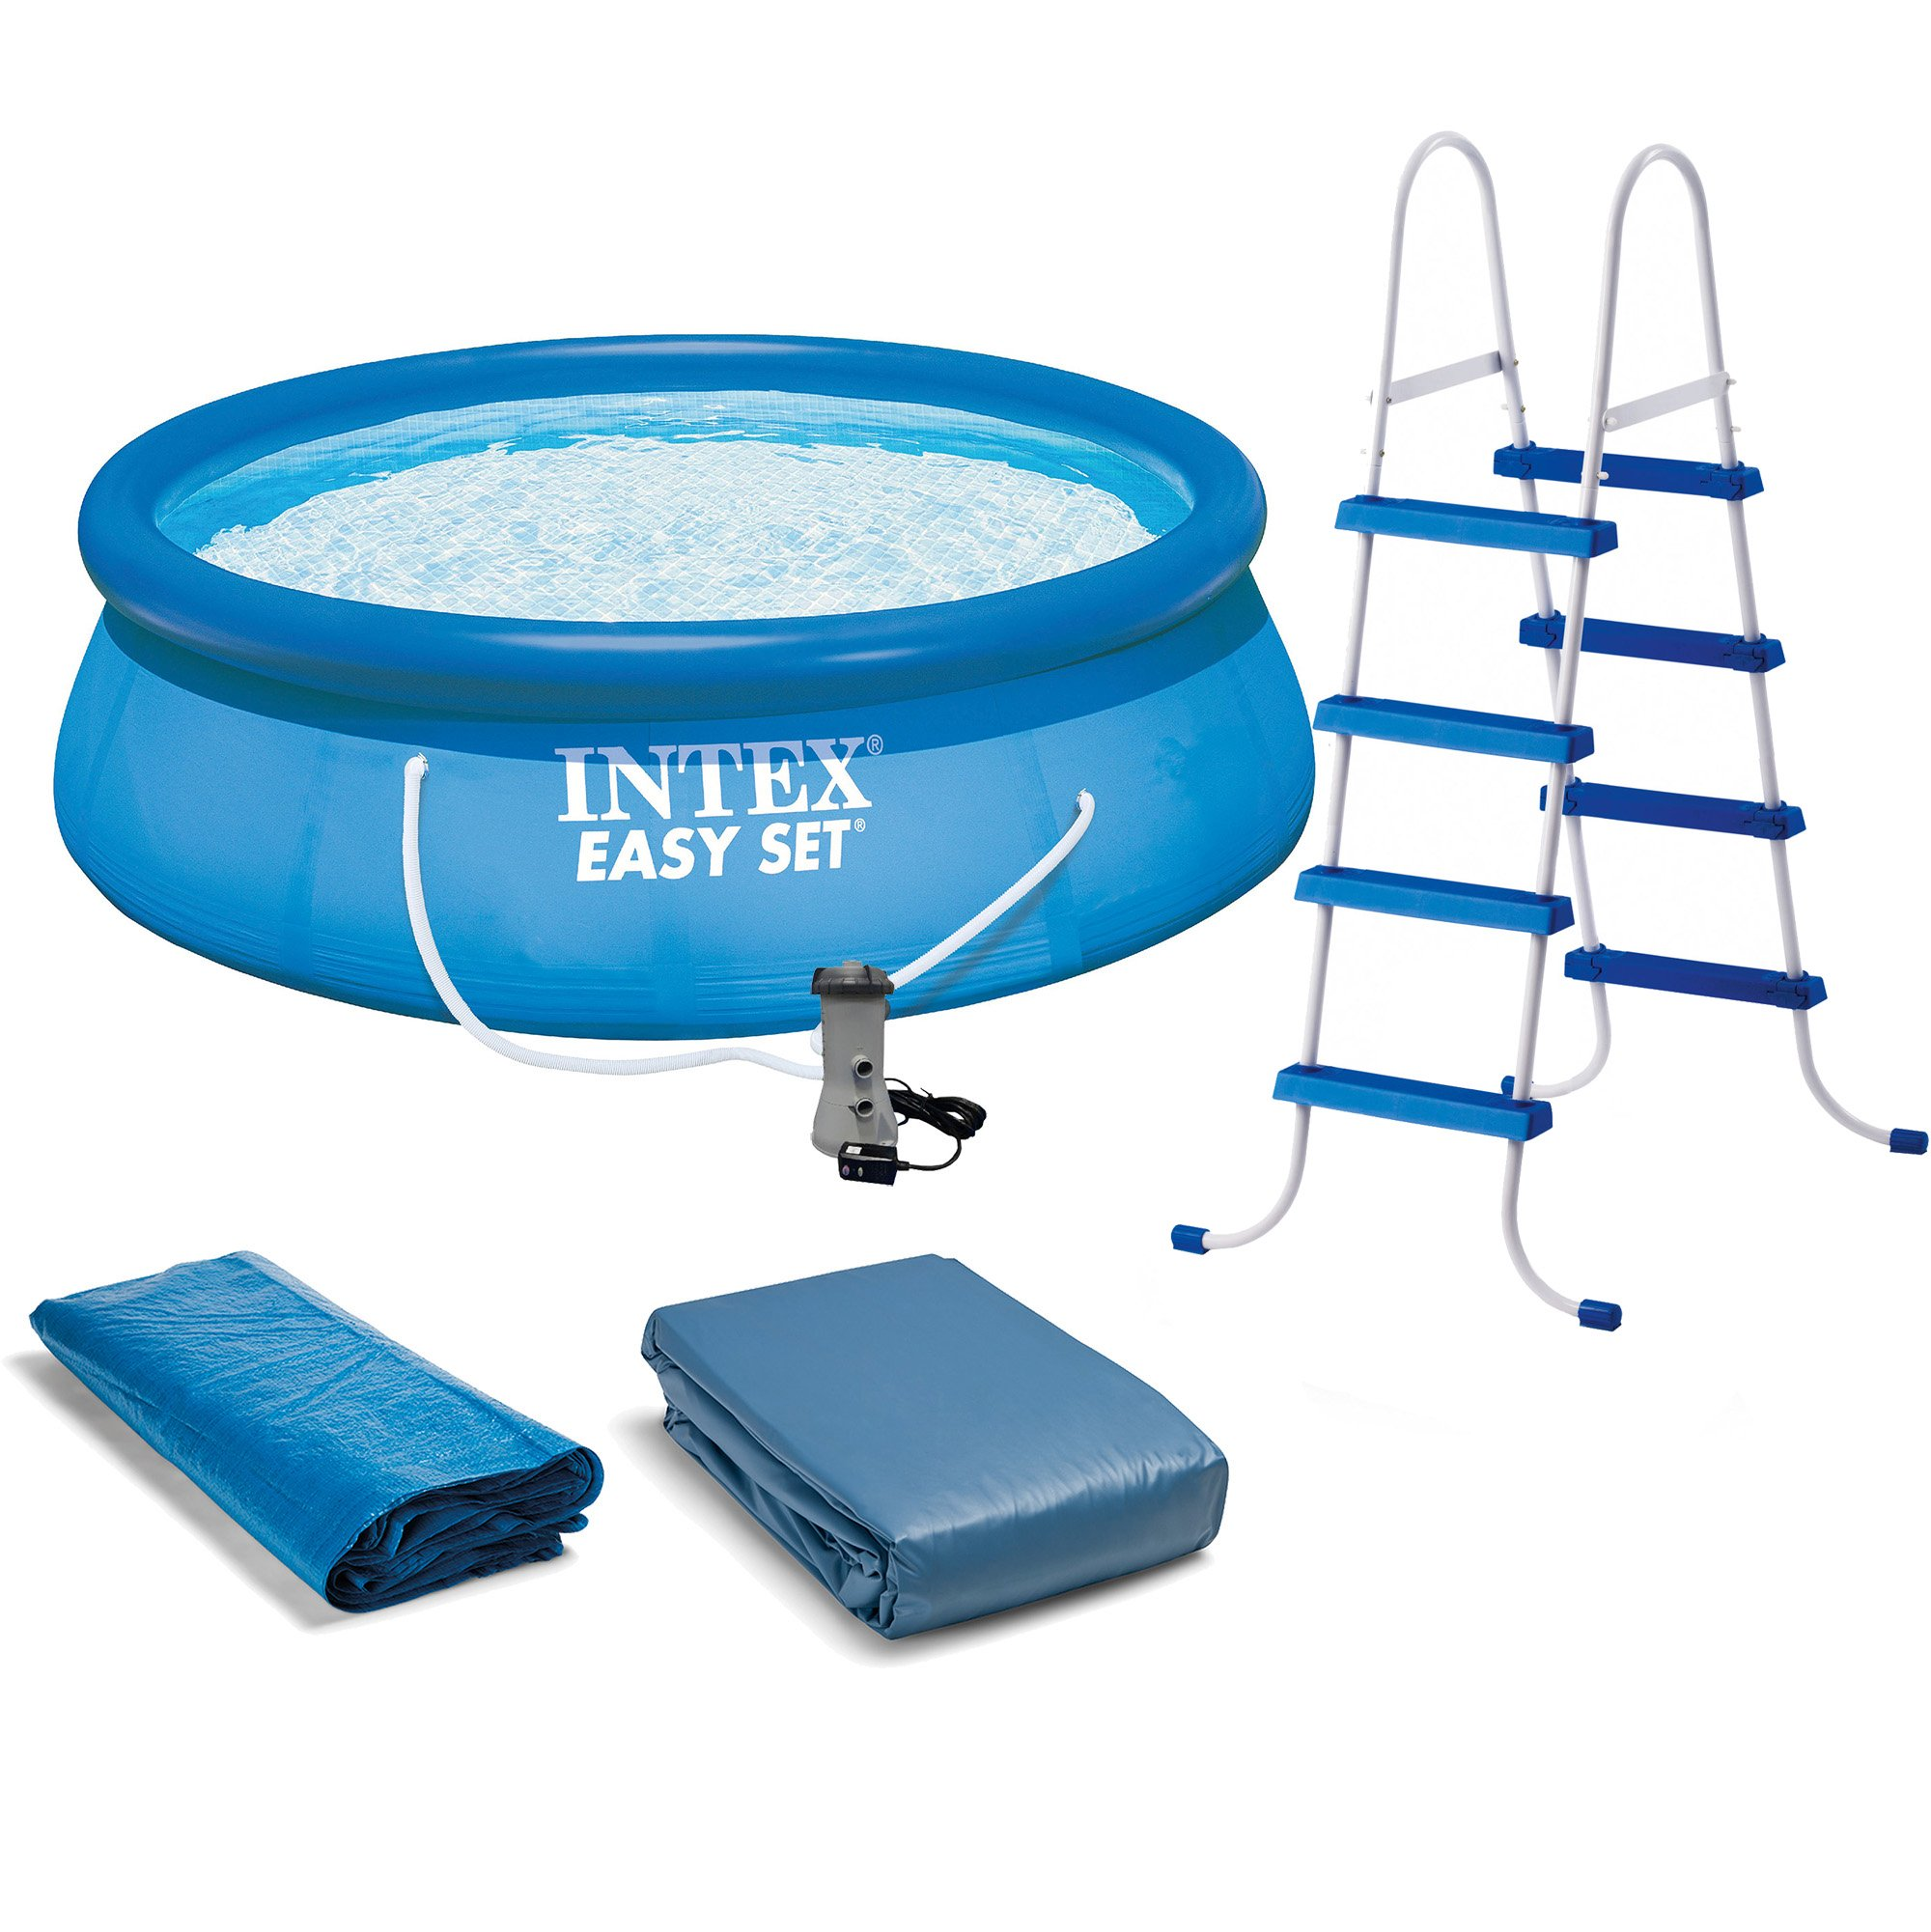 Intex 15 X 48 Inflatable Easy Set Above Ground Swimming Pool Ladder And Pump Walmart Com Walmart Com